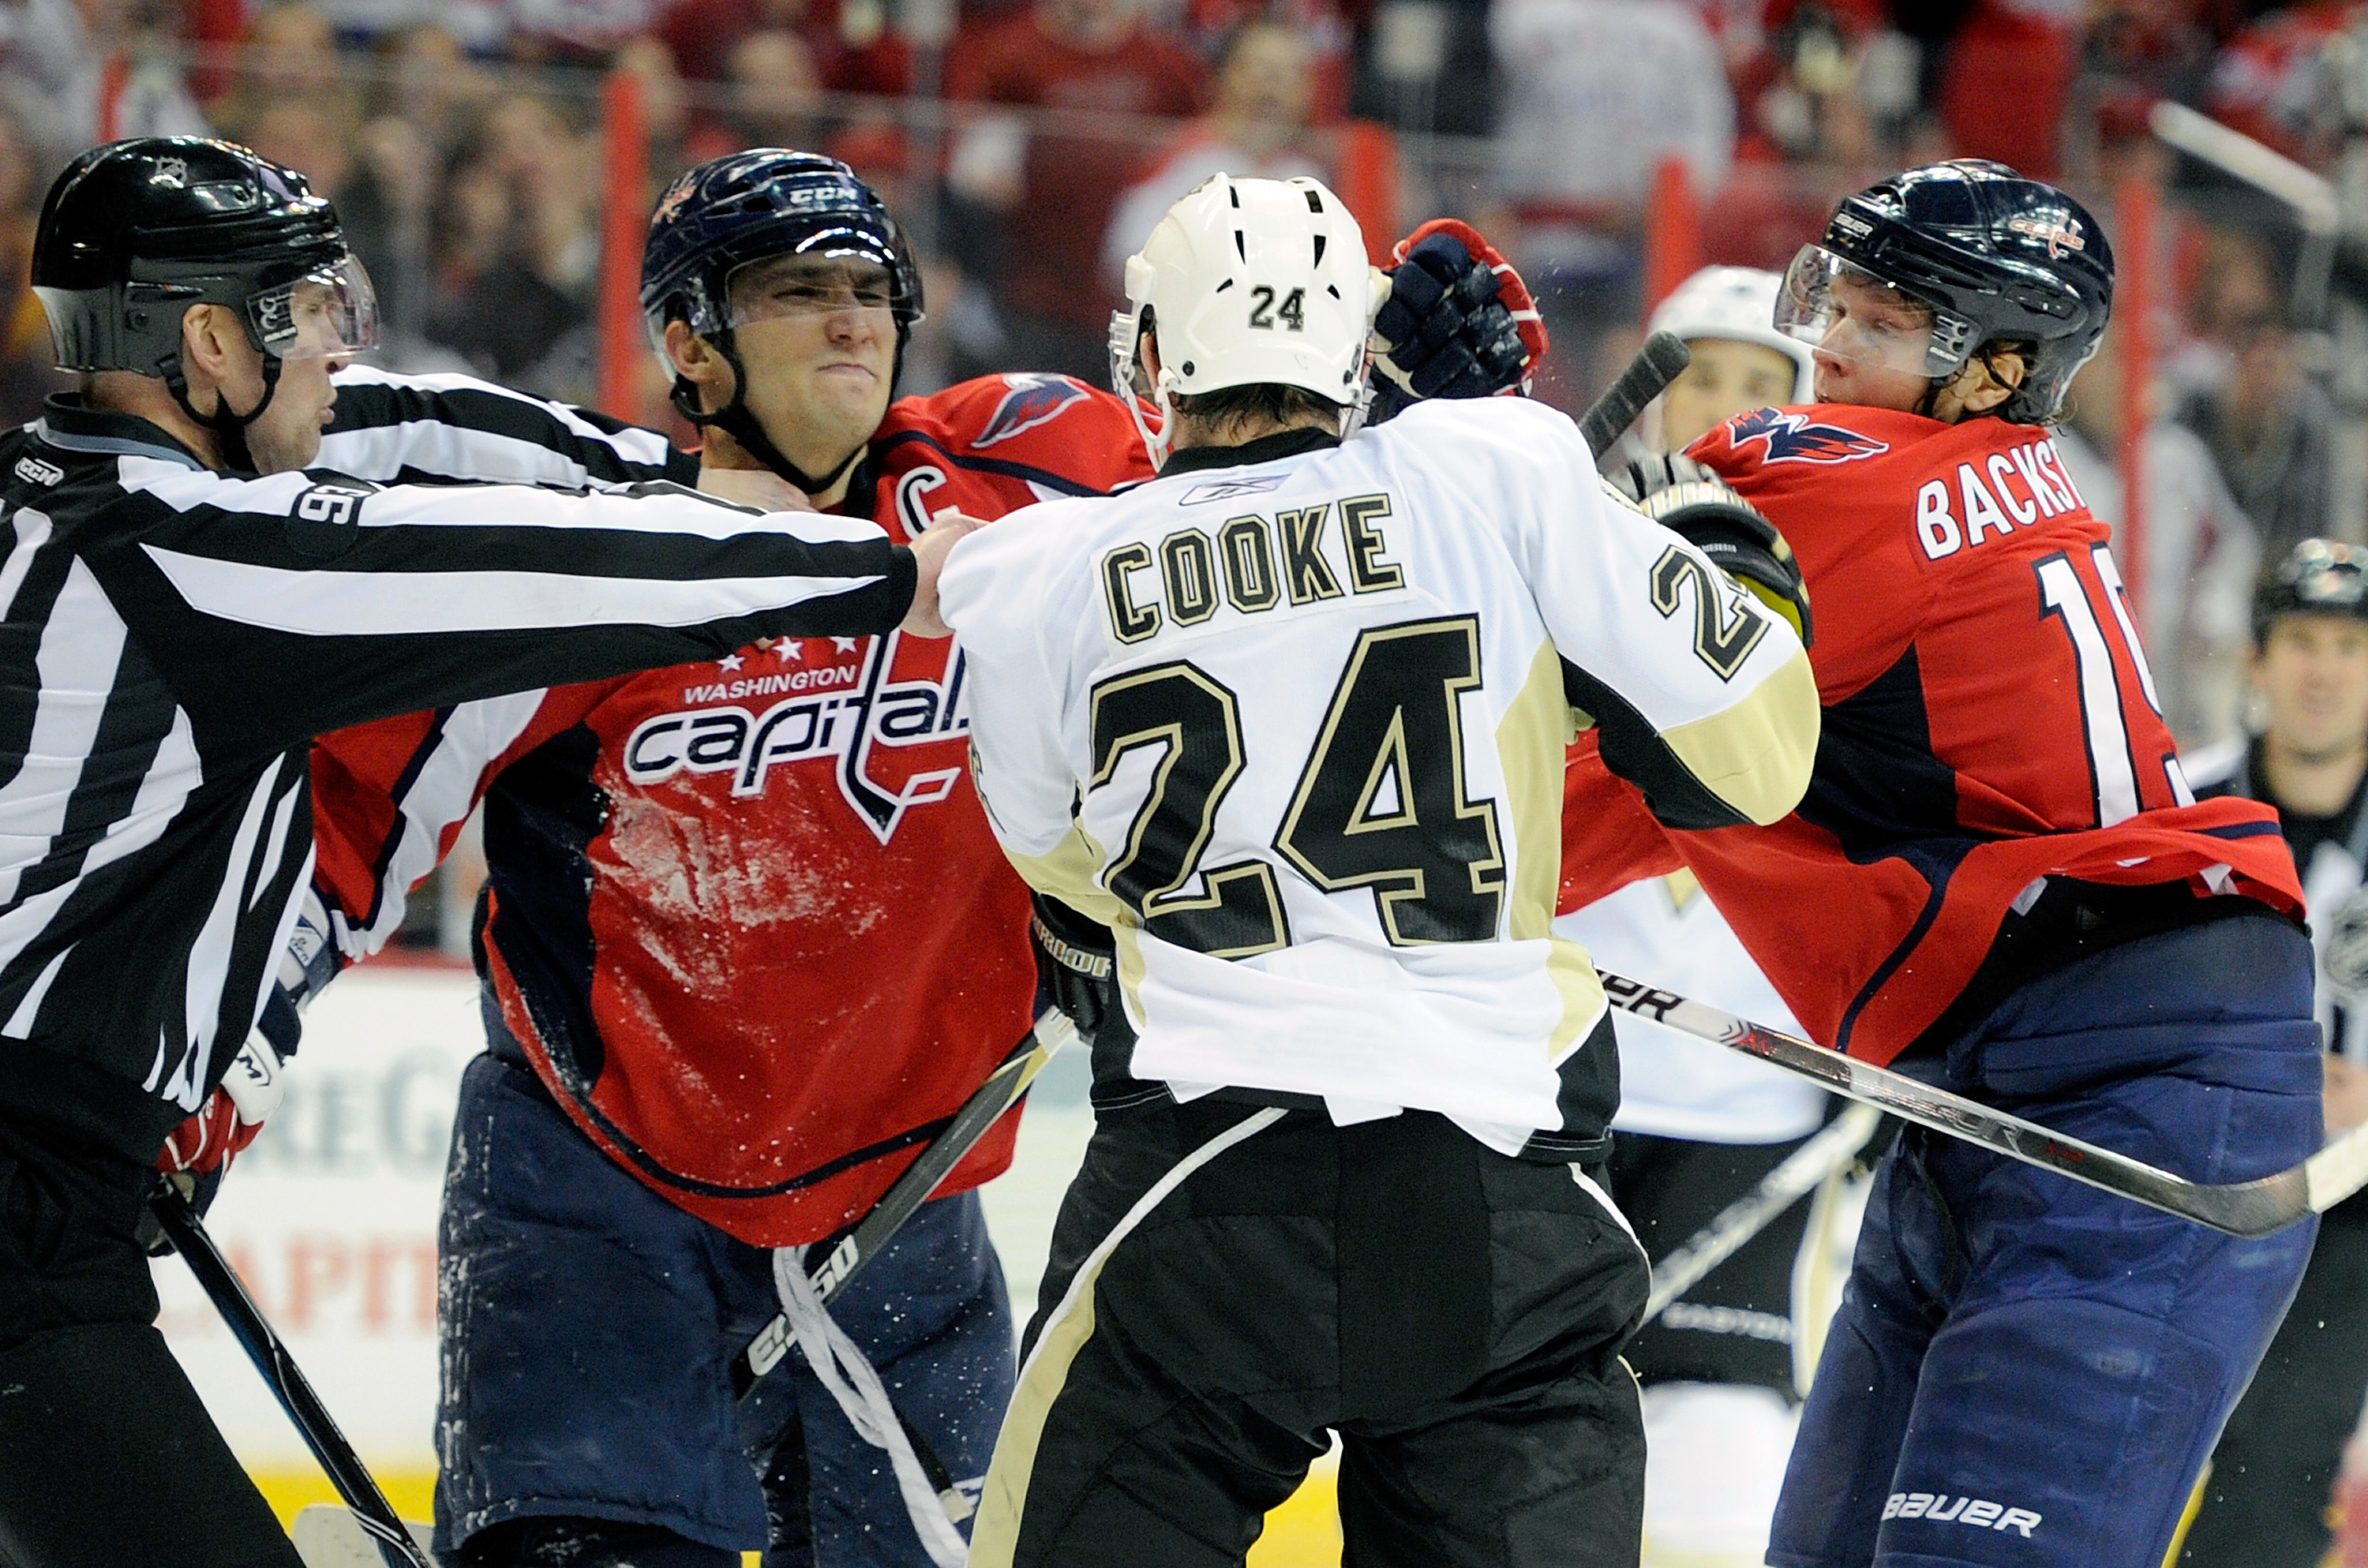 WASHINGTON, DC - FEBRUARY 06:  Alex Ovechkin #8 and Nicklas Backstrom #19 of the Washington Capitals rough it up with Matt Cooke #24 of the Pittsburgh Penguins at the Verizon Center on February 6, 2011 in Washington, DC.  (Photo by Greg Fiume/Getty Images